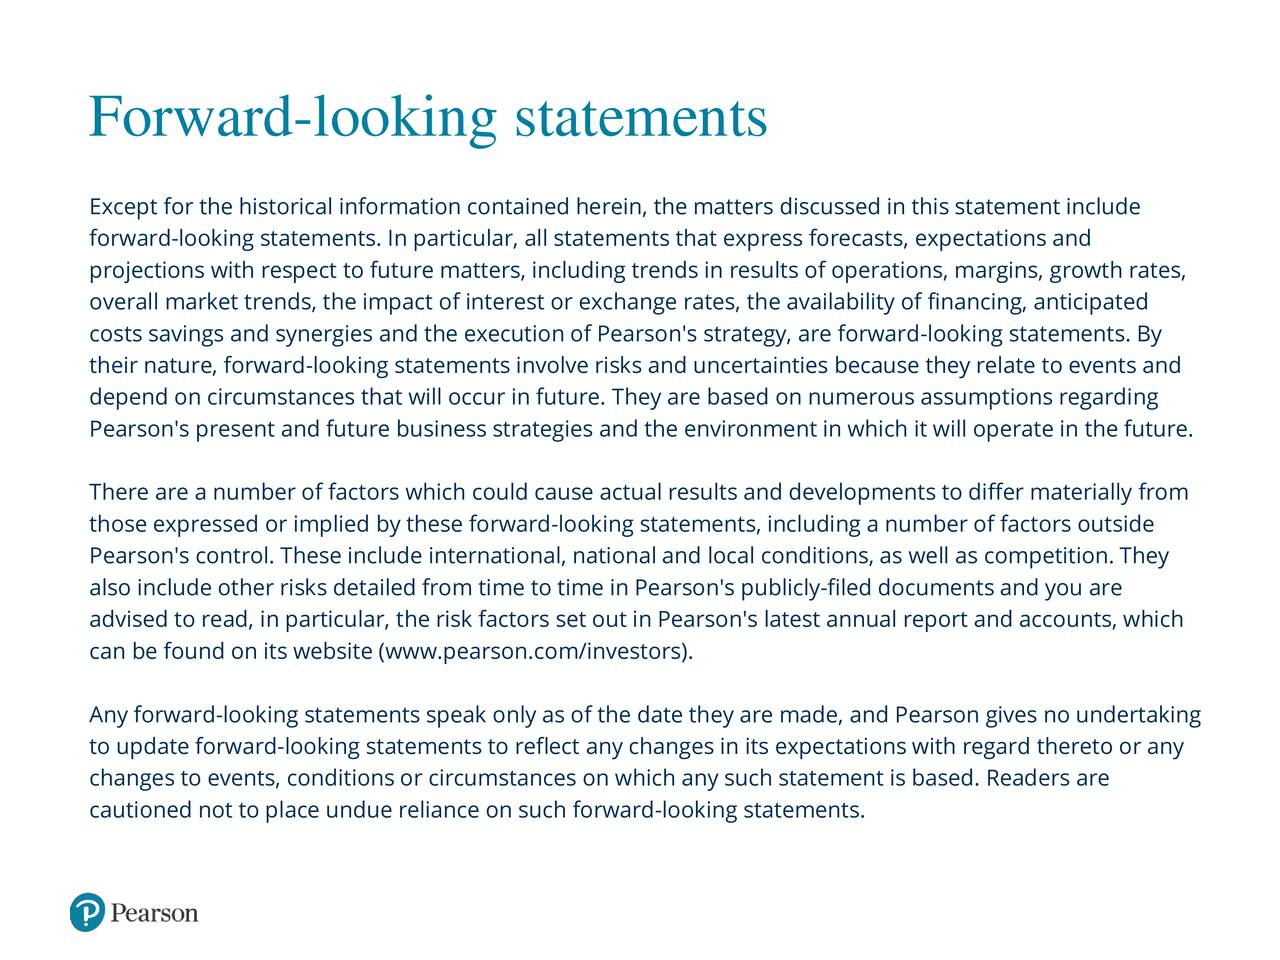 Except for the historical information contained herein, the matters discussed in this statement include forward-looking statements. In particular, all statements that express forecasts, expectations and projections with respect to future matters, including trends in results of operations, margins, growth rates, overall market trends, the impact of interest or exchange rates, the availability of financing, anticipated costs savings and synergies and the execution of Pearson's strategy, are forward-looking statements. By their nature, forward-looking statements involve risks and uncertainties because they relate to events and depend on circumstances that will occur in future. They are based on numerous assumptions regarding Pearson's present and future business strategies and the environment in which it will operate in the future. There are a number of factors which could cause actual results and developments to differ materially from those expressed or implied by these forward-looking statements, including a number of factors outside Pearson's control. These include international, national and local conditions, as well as competition. They also include other risks detailed from time to time in Pearson's publicly-filed documents and you are advised to read, in particular, the risk factors set out in Pearson's latest annual report and accounts, which can be found on its website (www.pearson.com/investors). Any forward-looking statements speak only as of the date they are made, and Pearson gives no undertaking to update forward-looking statements to reflect any changes in its expectations with regard thereto or any changes to events, conditions or circumstances on which any such statement is based. Readers are cautioned not to place undue reliance on such forward-looking statements.